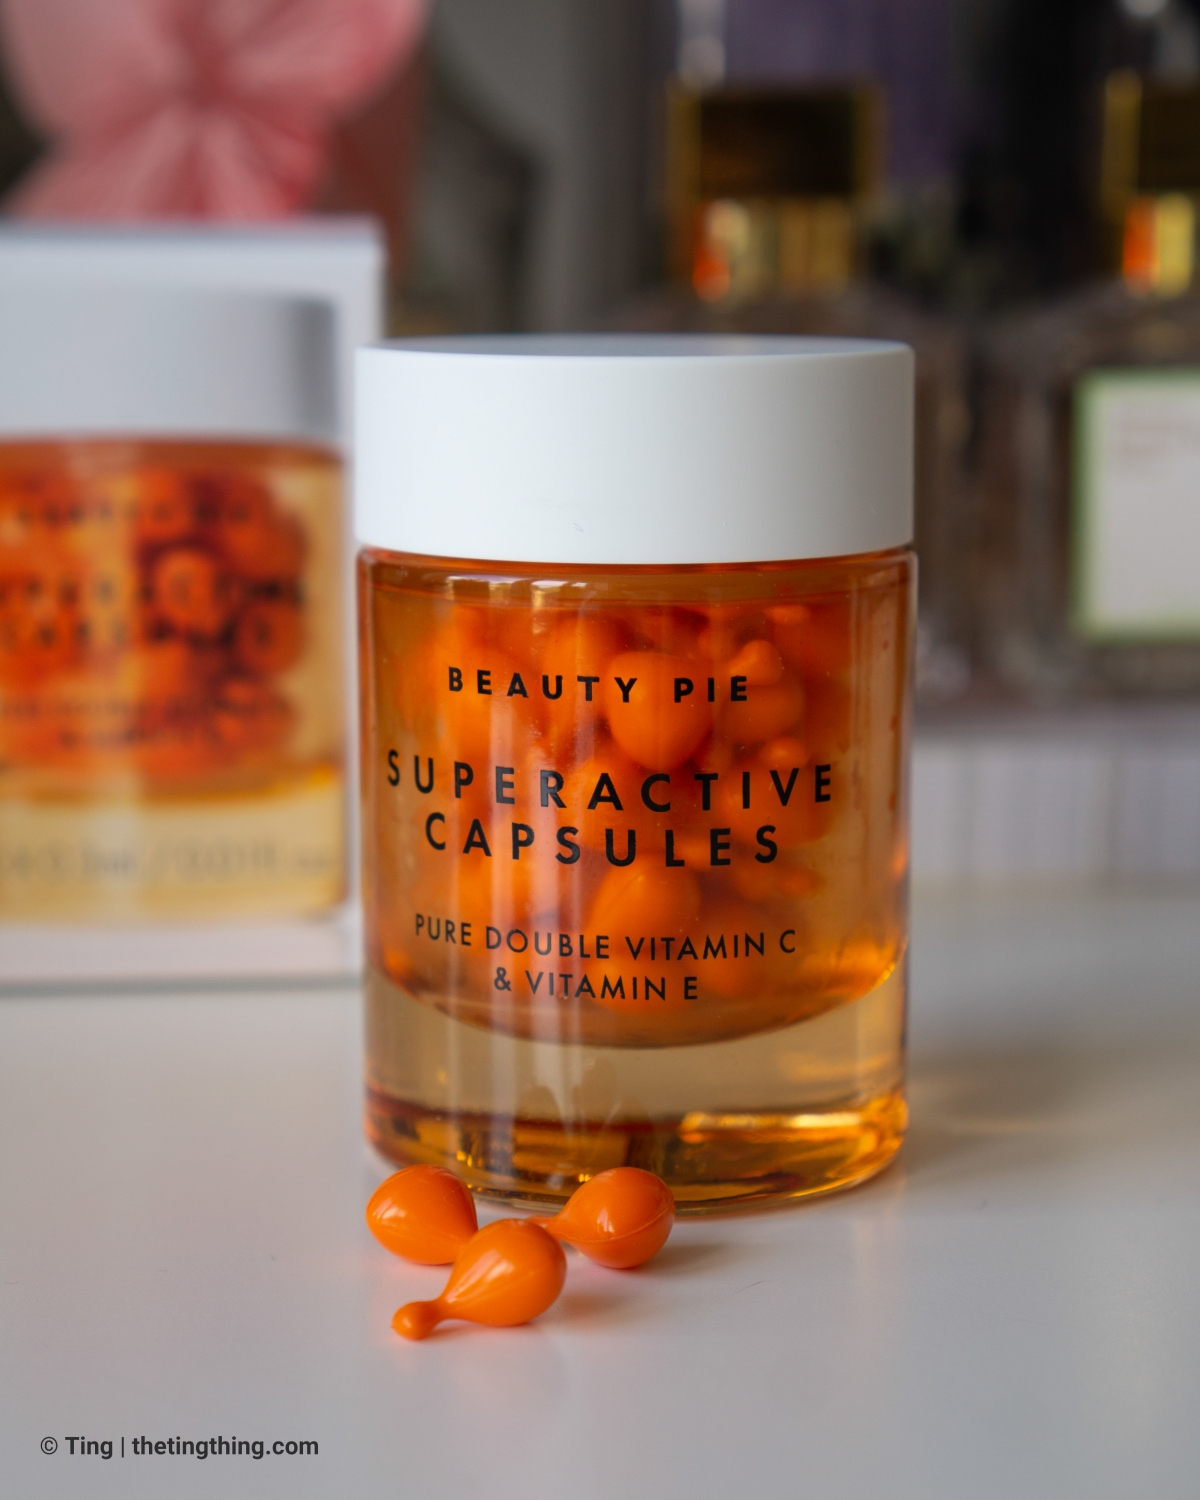 A jar of Beauty Pie Superactive Capsules on a white desk. This close up shot shows three capsules lying on the desk next to the jar.